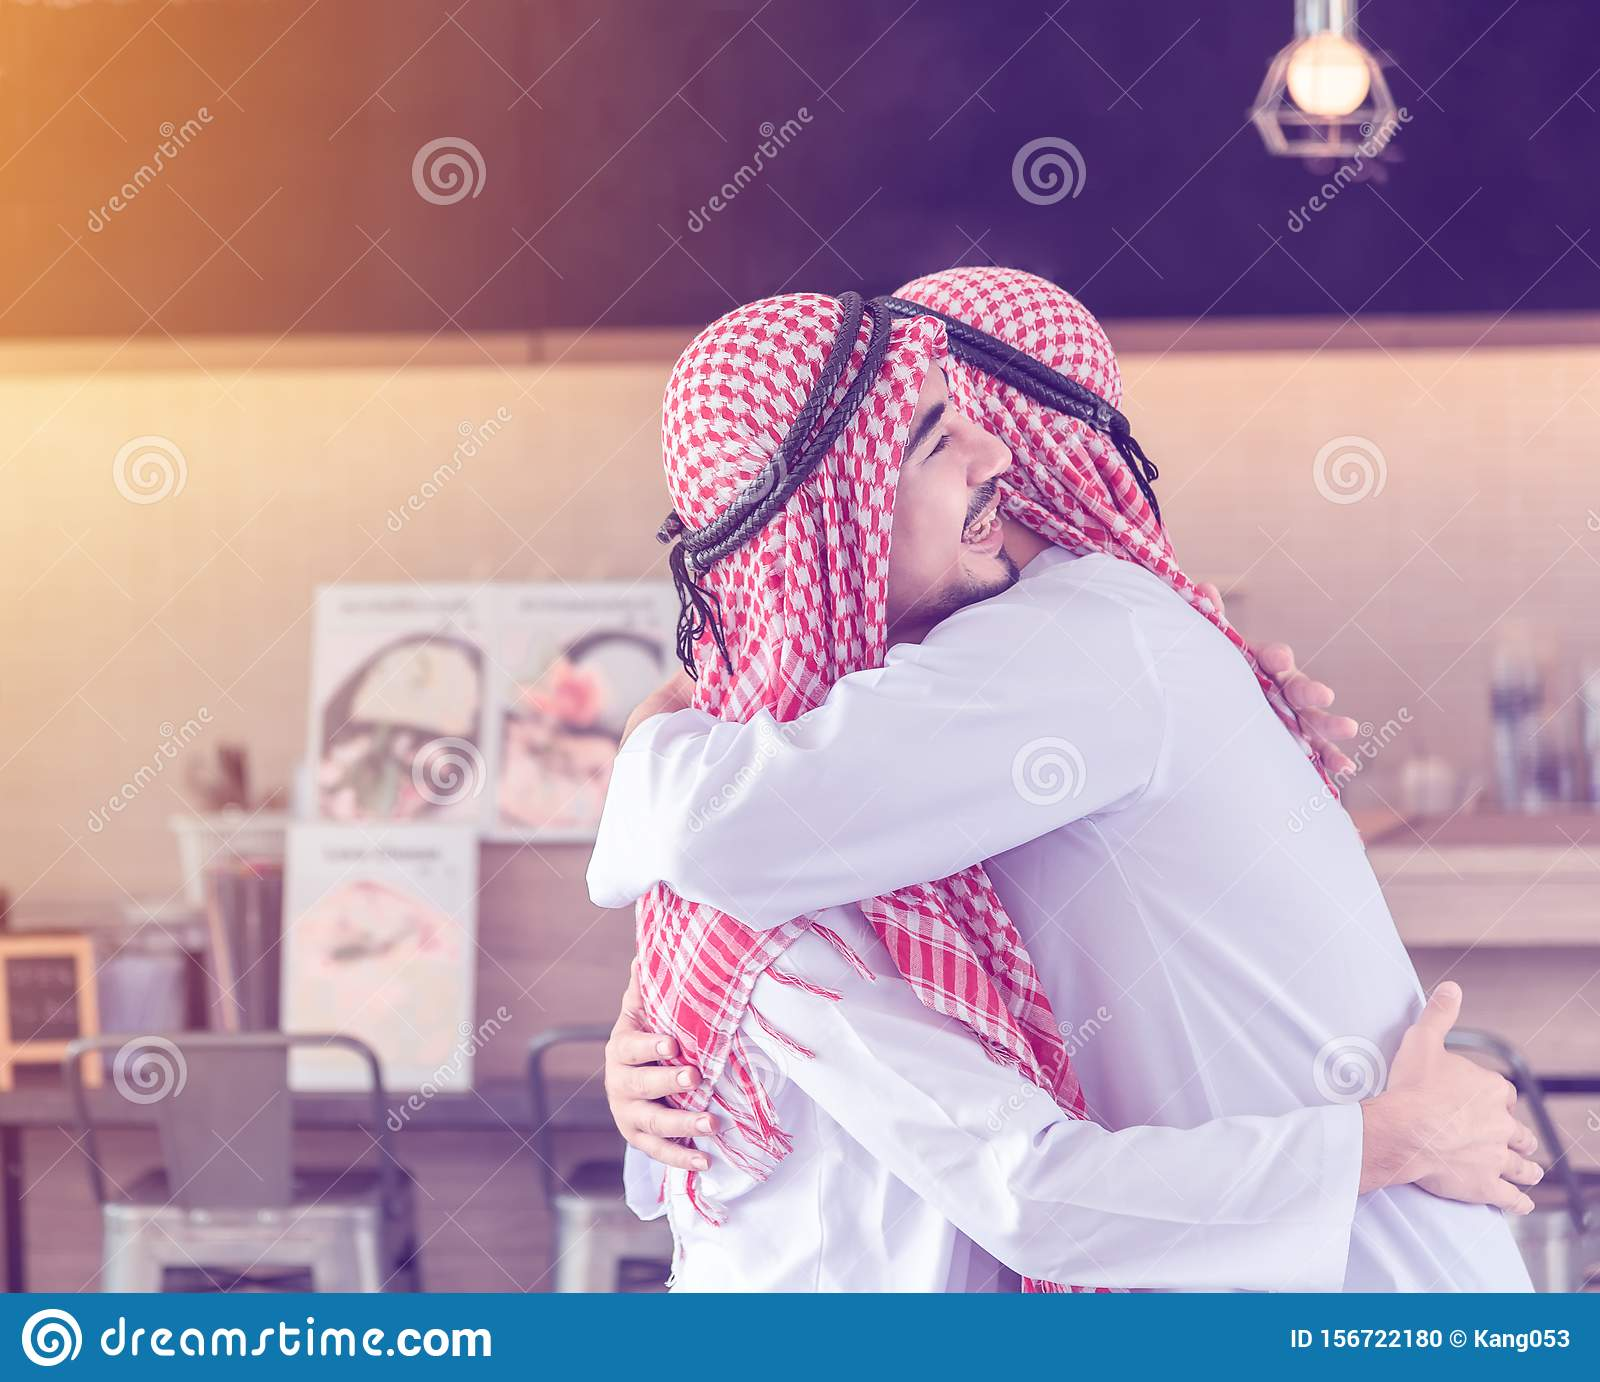 Two Arabian Men Who Are Friends Together Are Hugging And